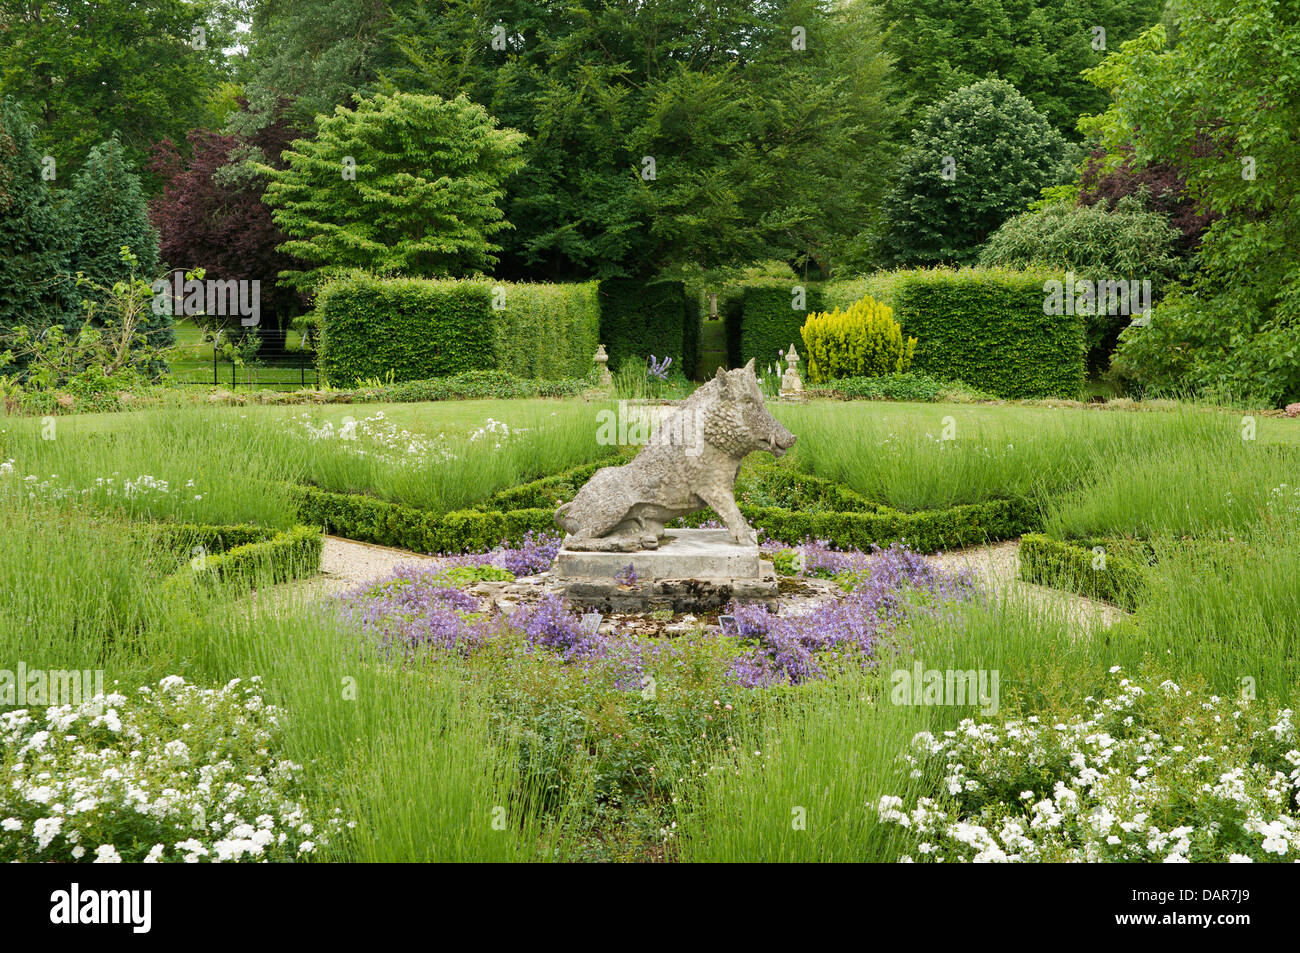 Stone hog statue in garden with box hedge borders and lavender plants in Ampney Park, 17th century English country - Stock Image